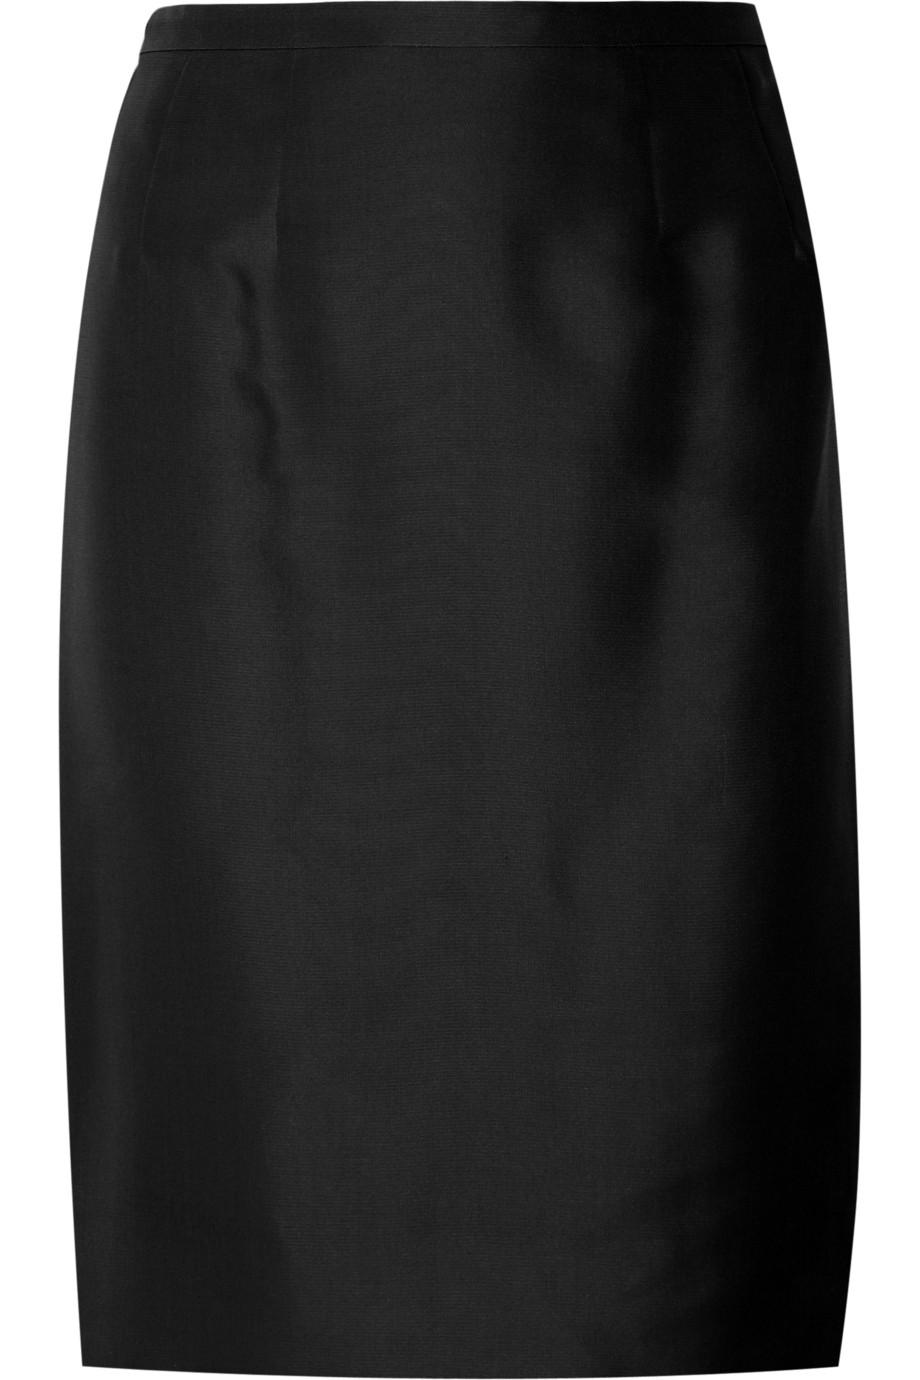 Valentino Woven Silk Pencil Skirt in Black | Lyst